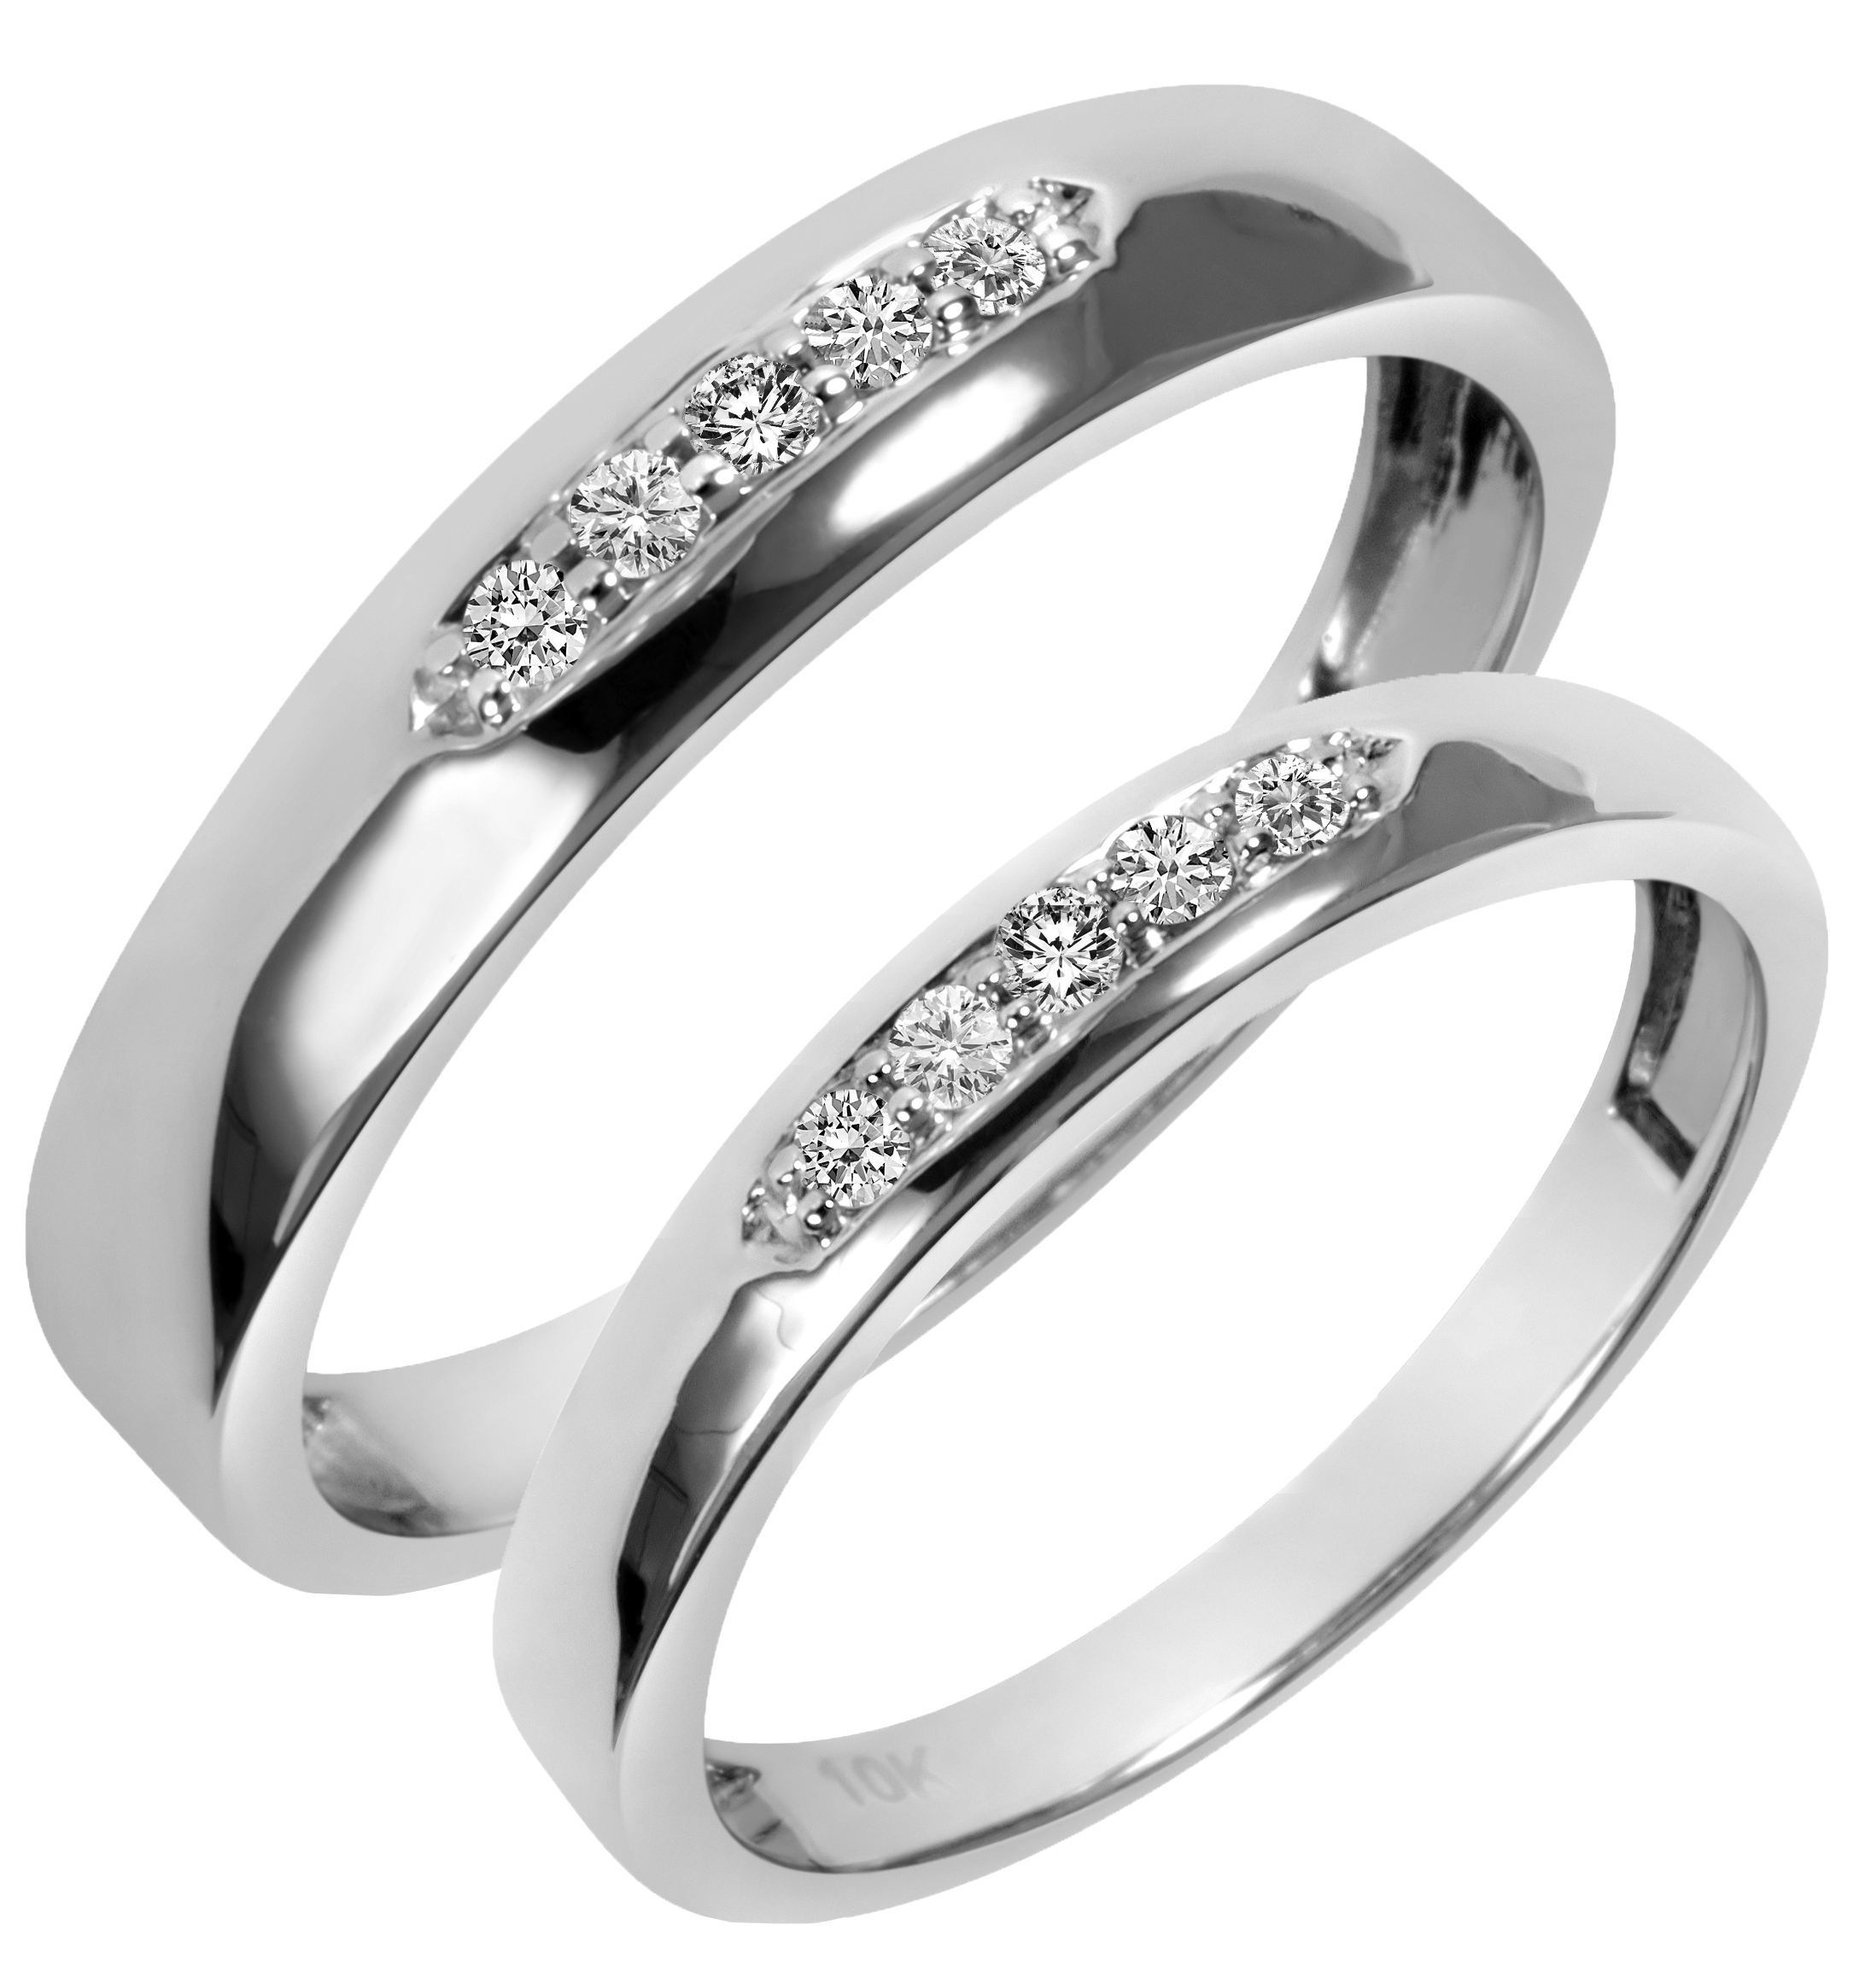 15 Carat TW Diamond His And Hers Wedding Band Set 10K White Gold